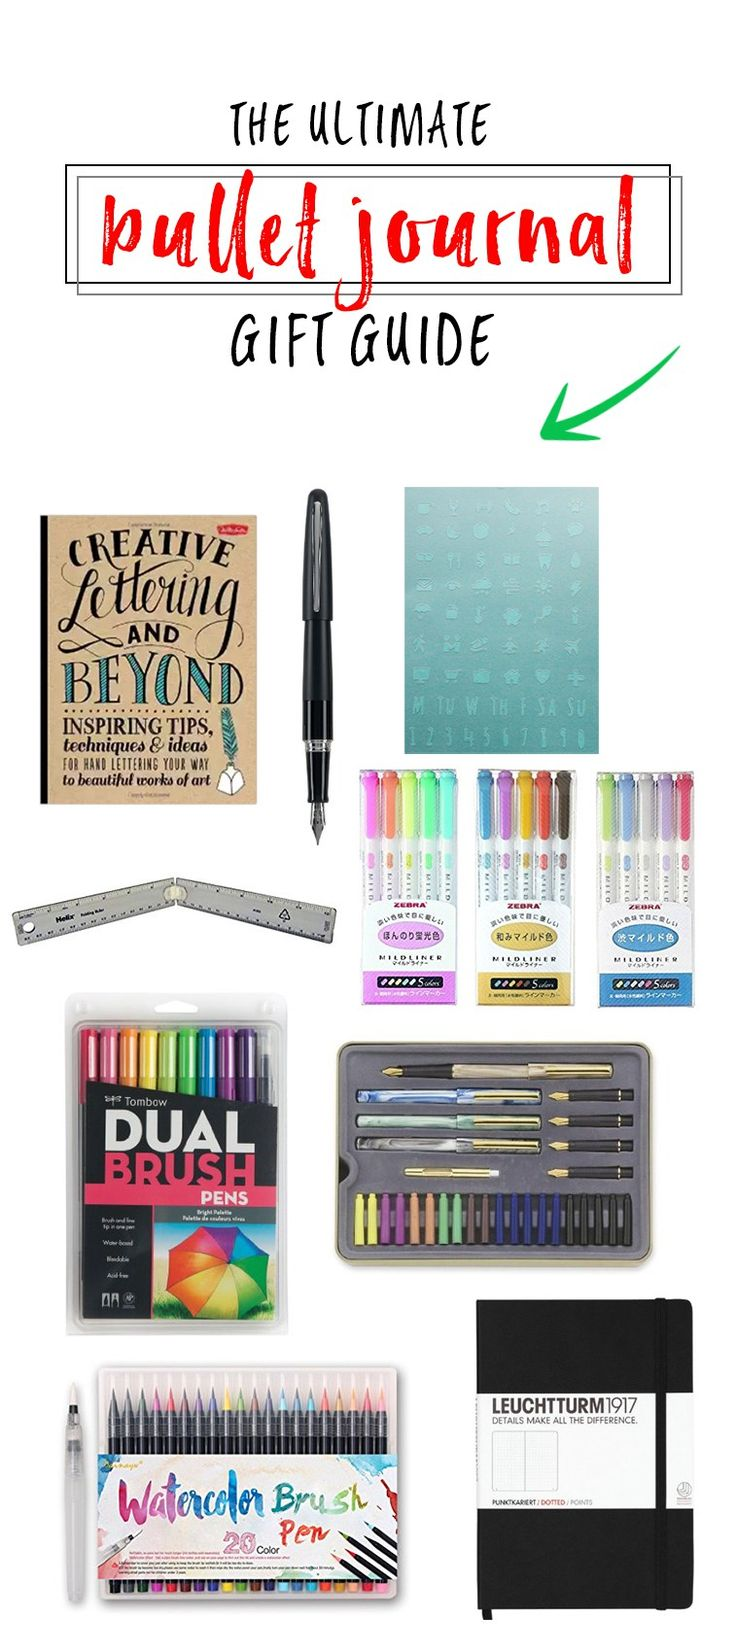 The Ultimate Bullet Journal Gift Guide -- Gift ideas for that Bullet Journaler or planner in your life!